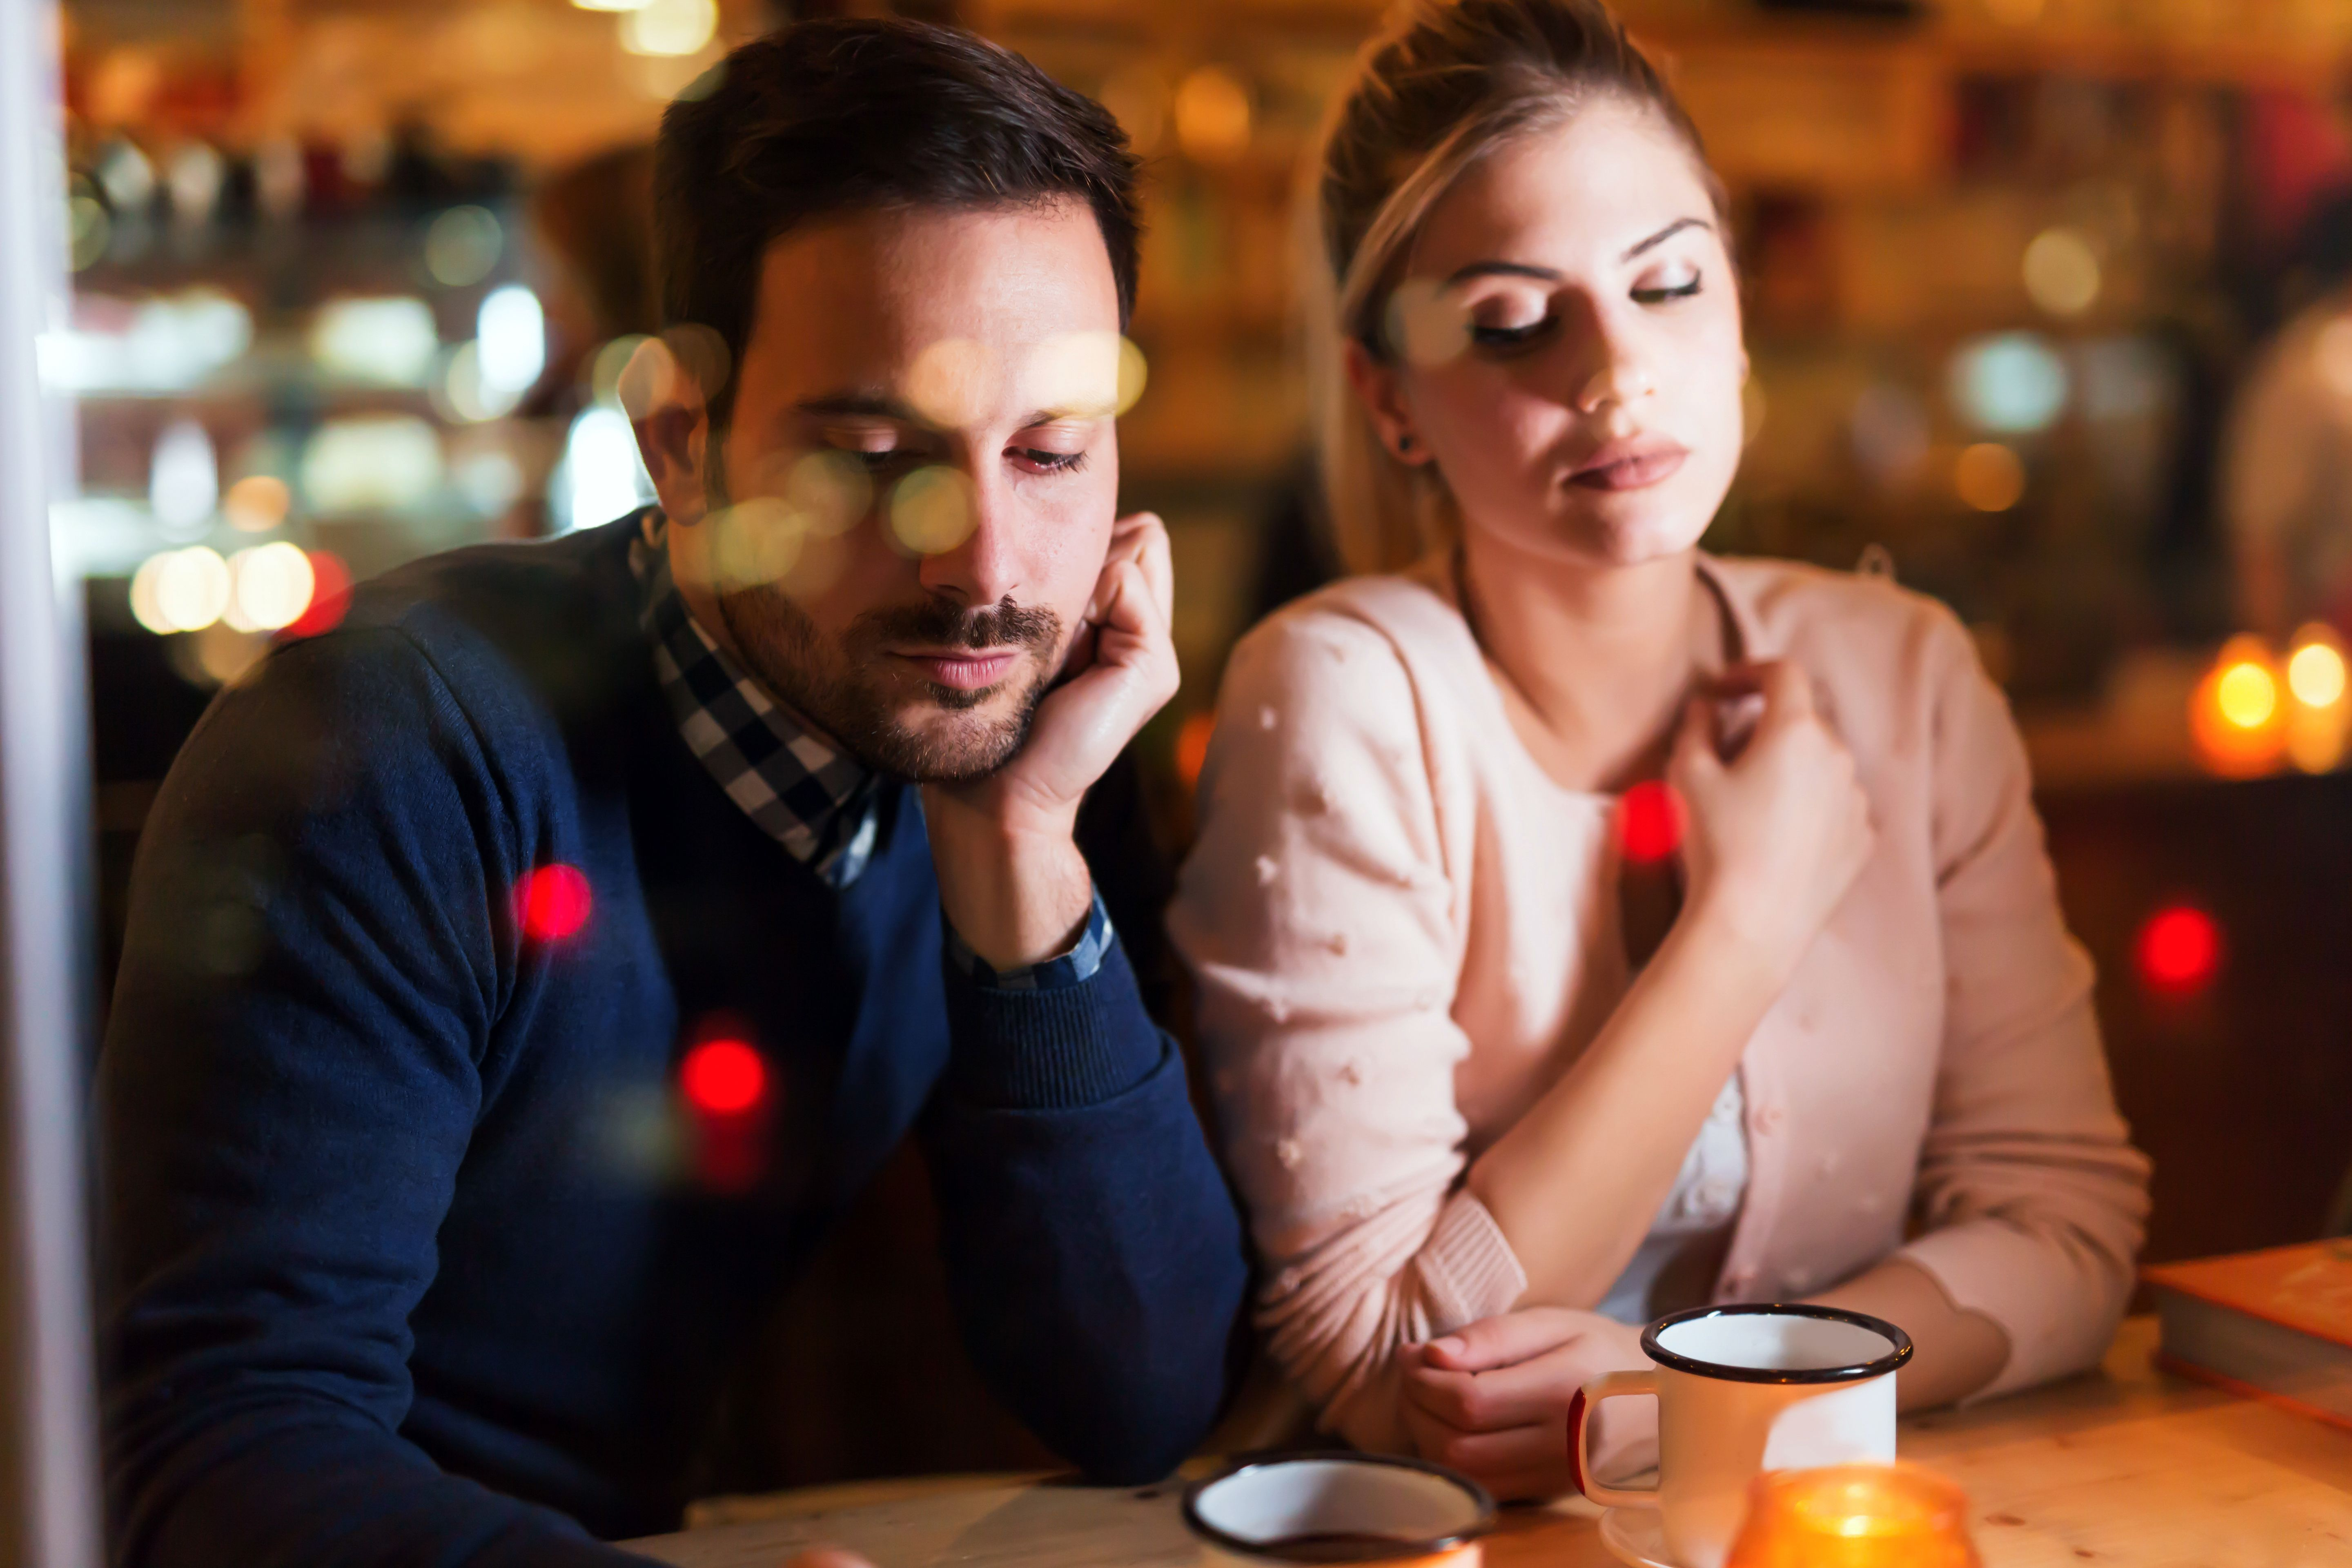 A bored couple in a cafe, showing signs of jealousy. | Photo: Shutterstock